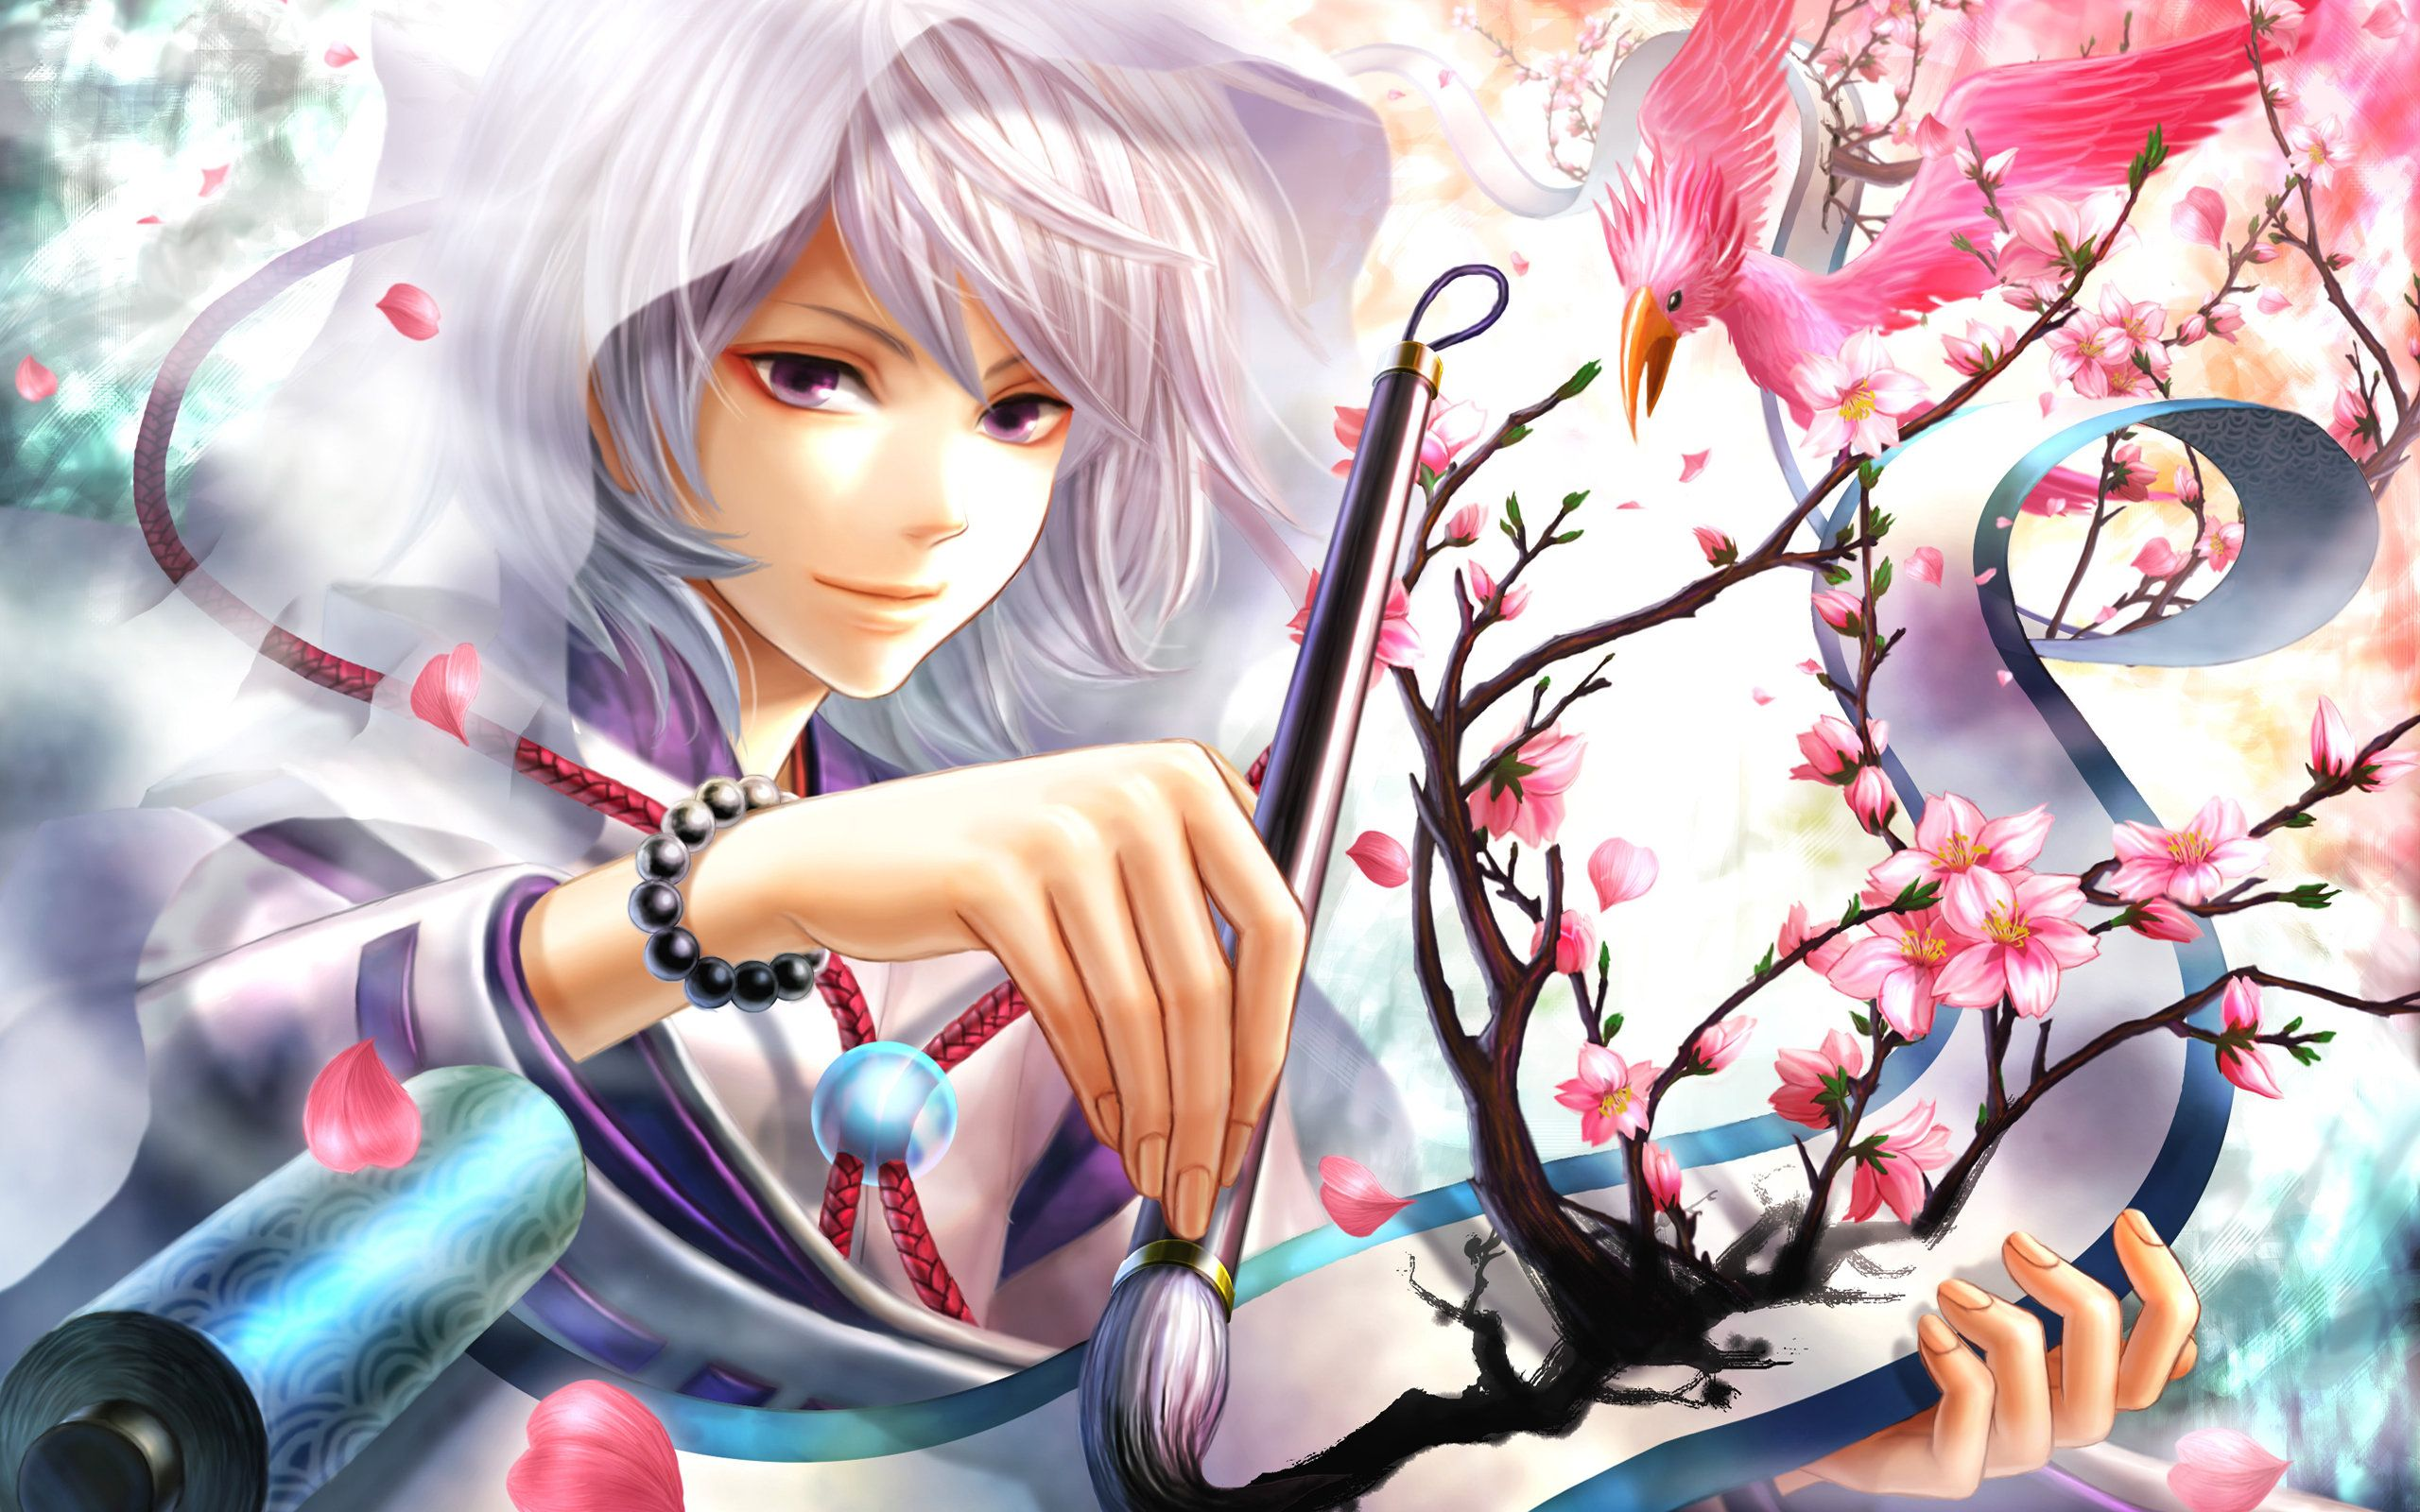 Download Anime Screensavers 21698 2560x1600 px High